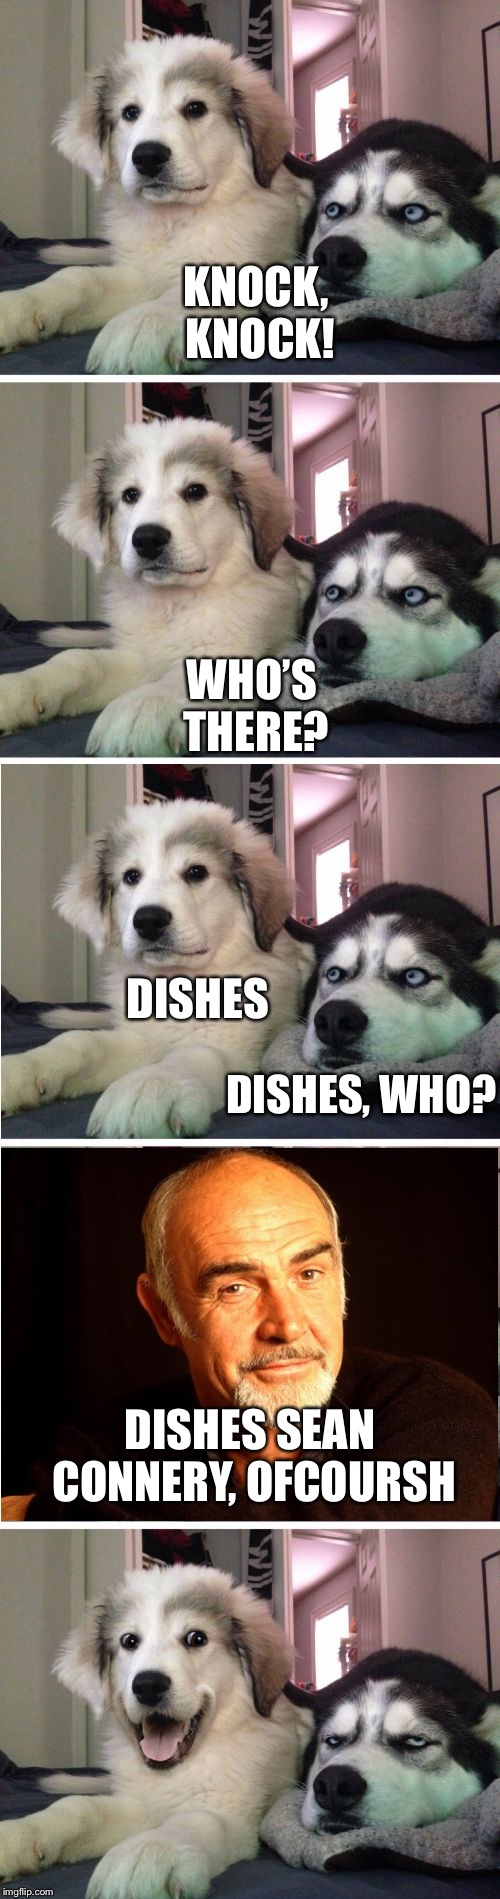 Knock Knock Dogs | KNOCK, KNOCK! DISHES WHO'S THERE? DISHES, WHO? DISHES SEAN CONNERY, OFCOURSH | image tagged in knock knock dogs | made w/ Imgflip meme maker